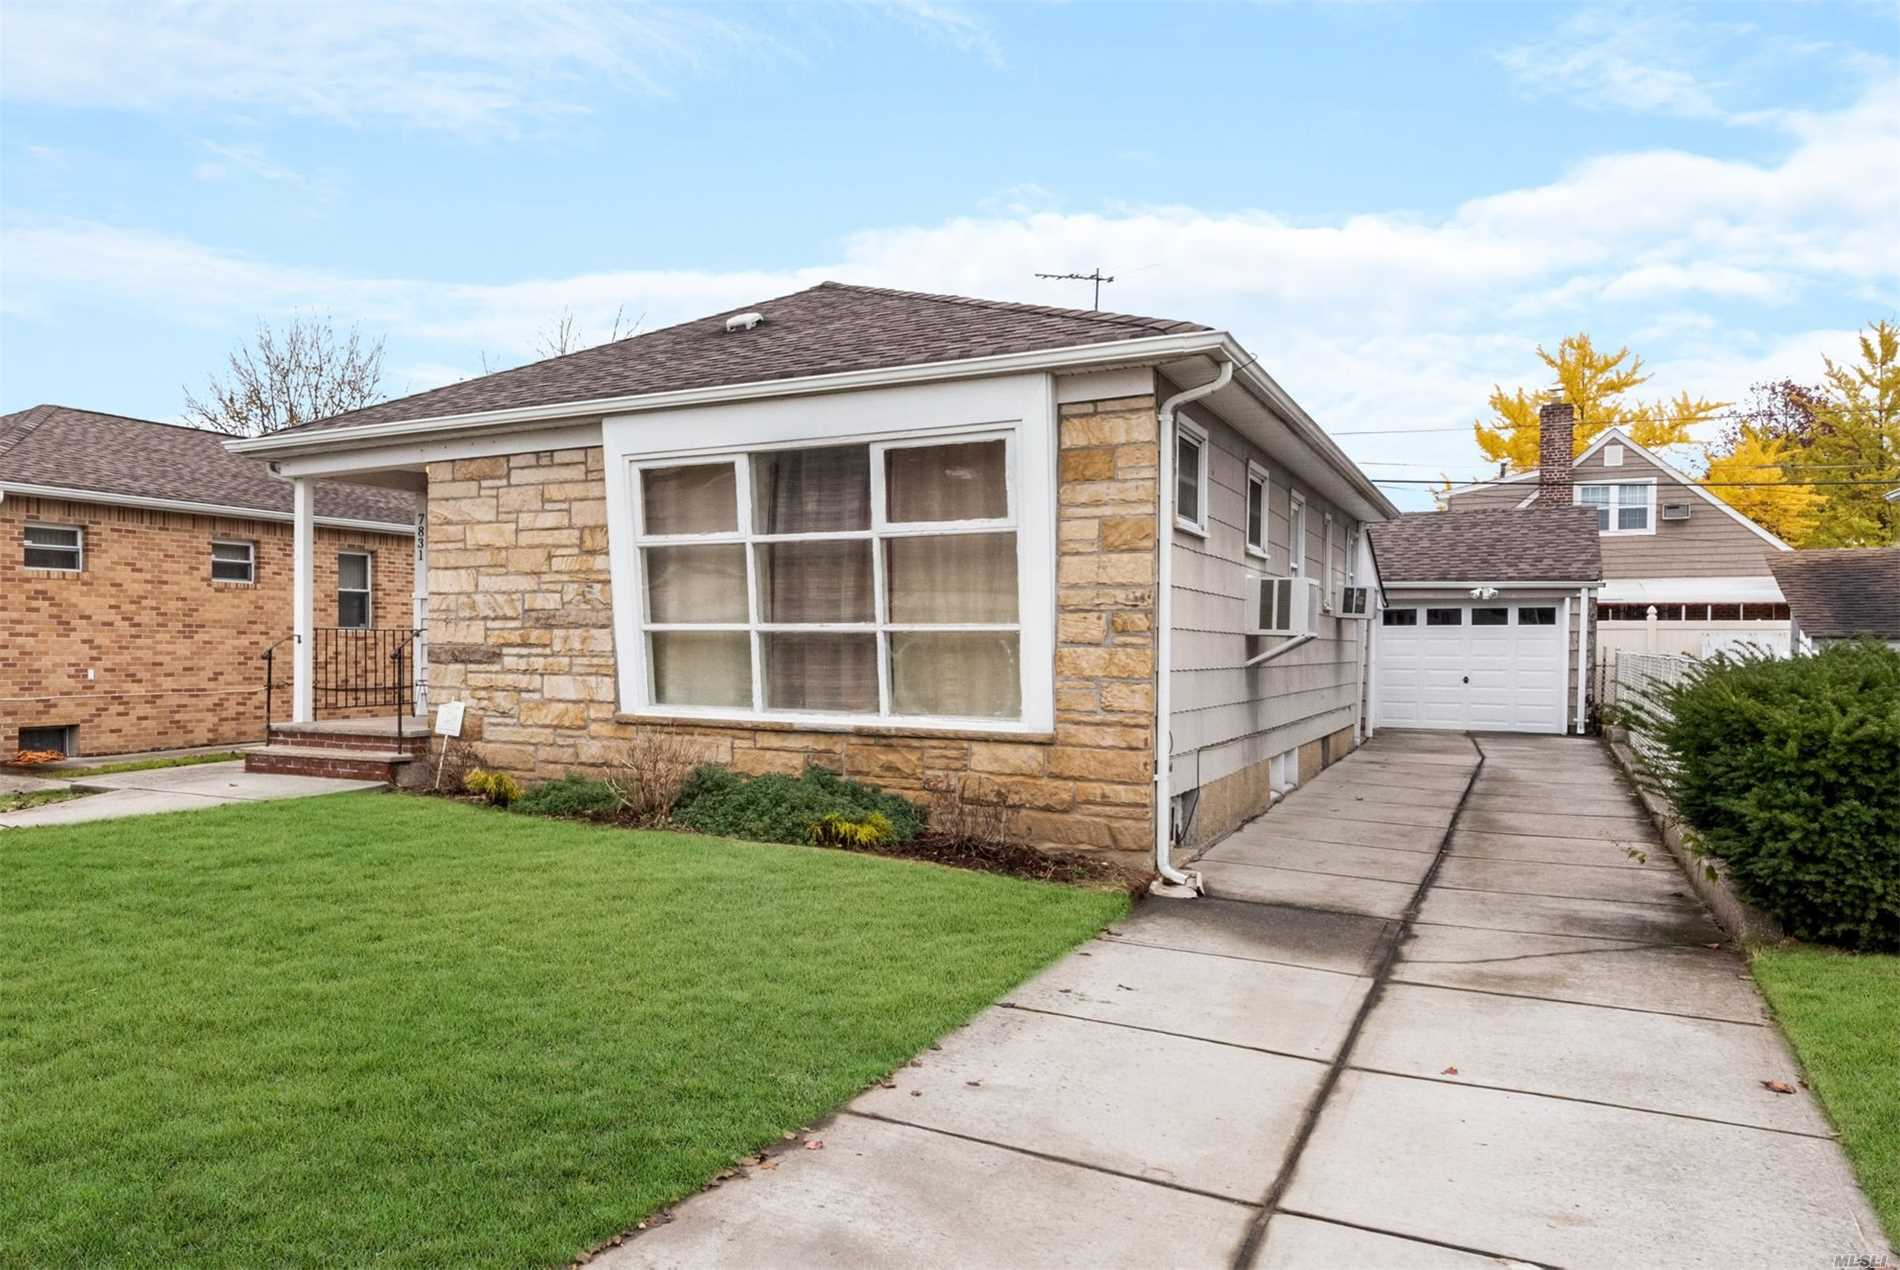 Full House Ranch Rental Features Bright Living Room, Spacious 3 Bedrooms, Kitchen, 2 Bathrooms, Hardwood Floors Throughout And Ample Closet Space. Great Location, Easy Access To Shopping, Major Highways And Public Transportation.